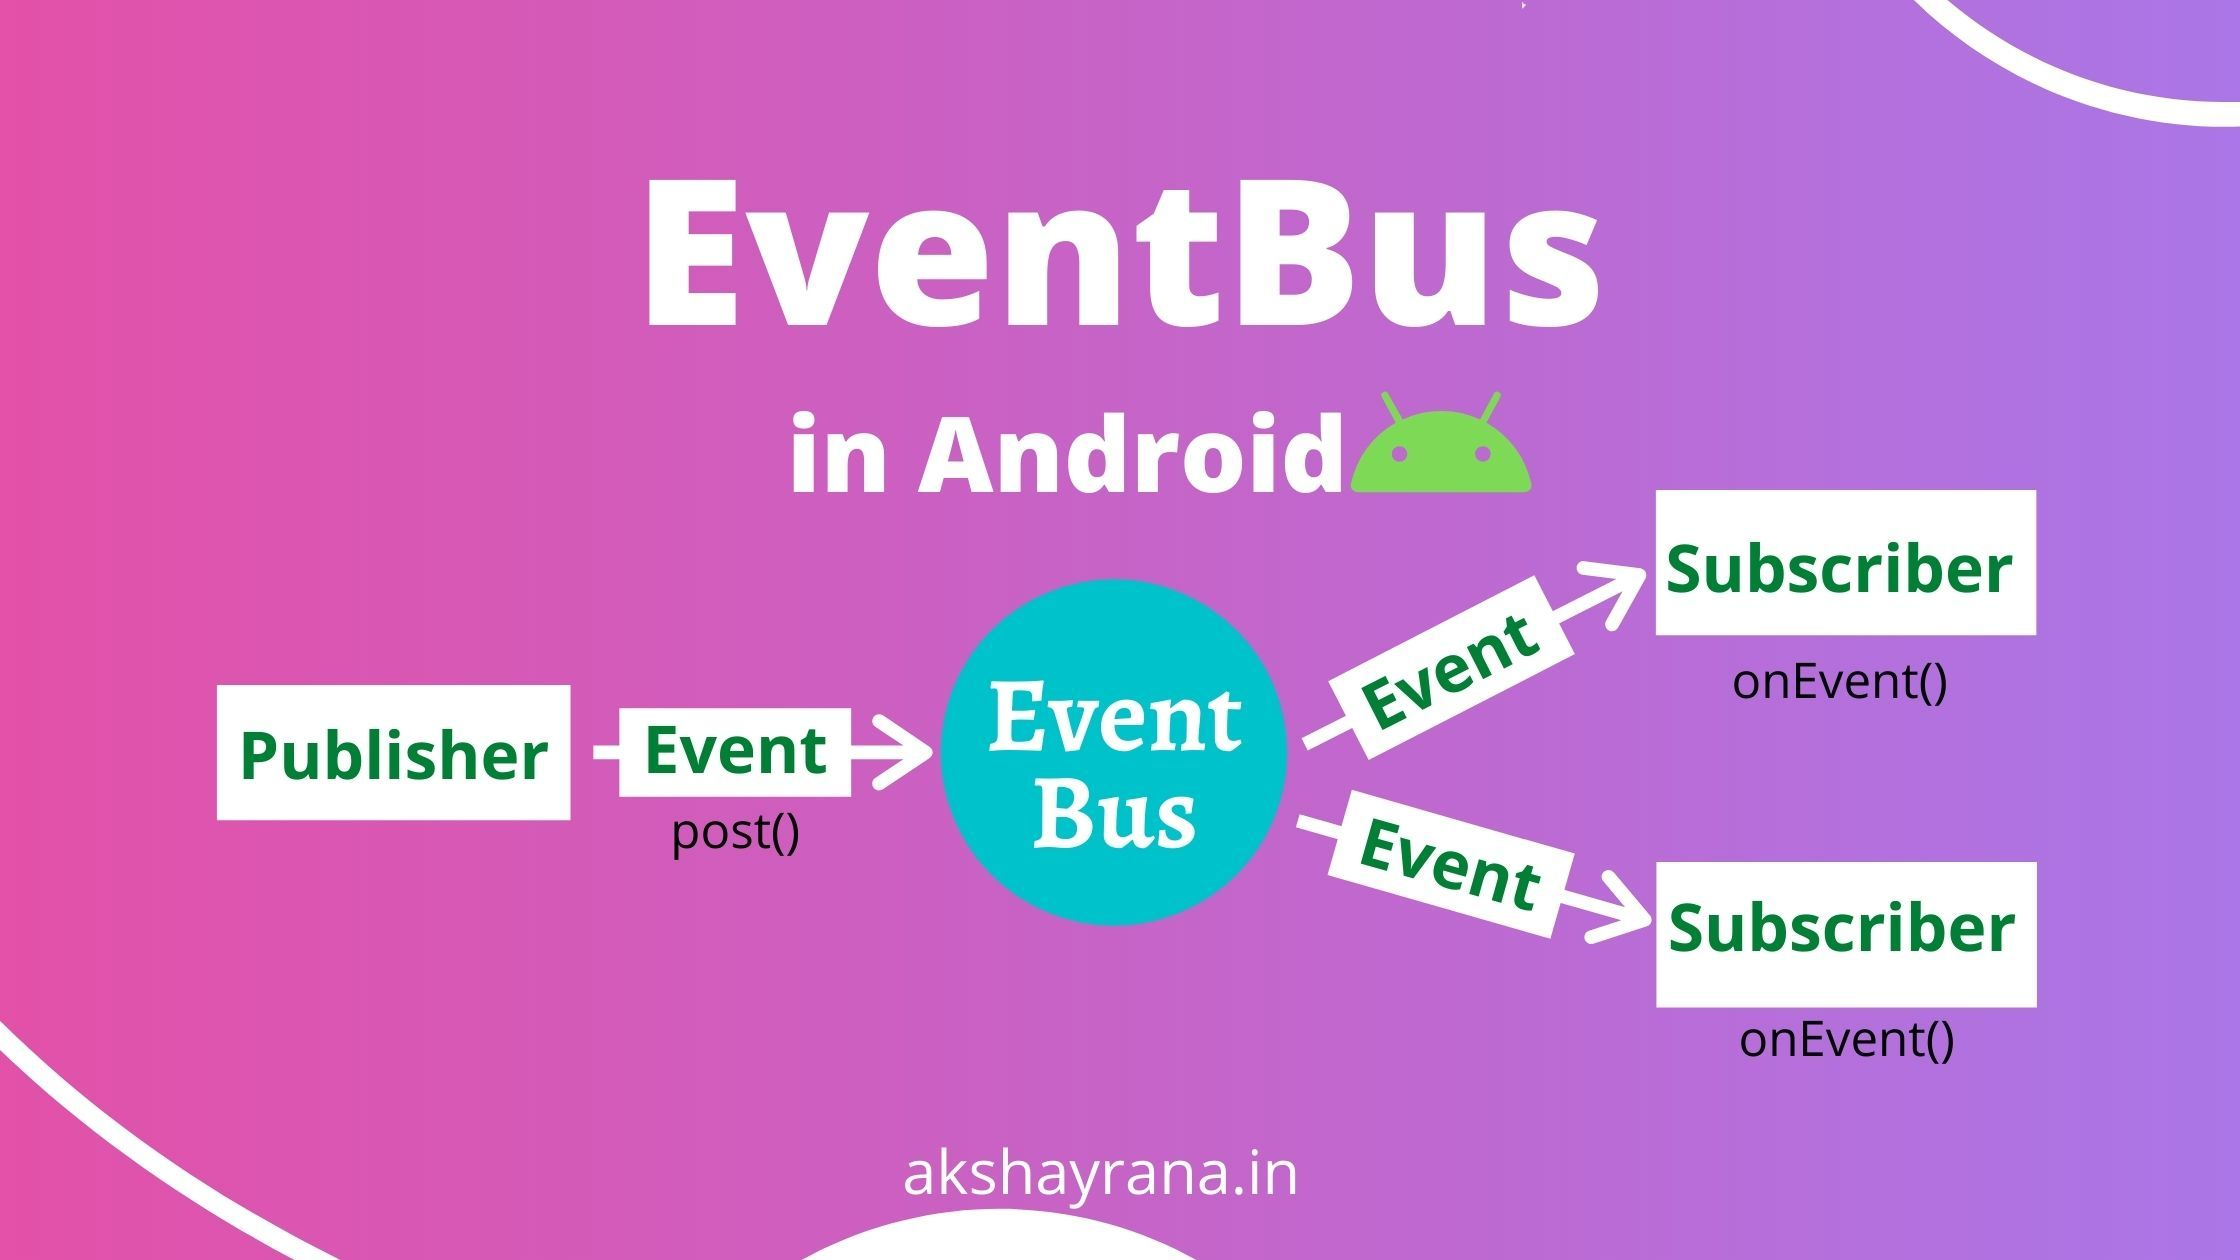 /how-to-create-a-simple-event-bus-in-android-9ny3wyj feature image